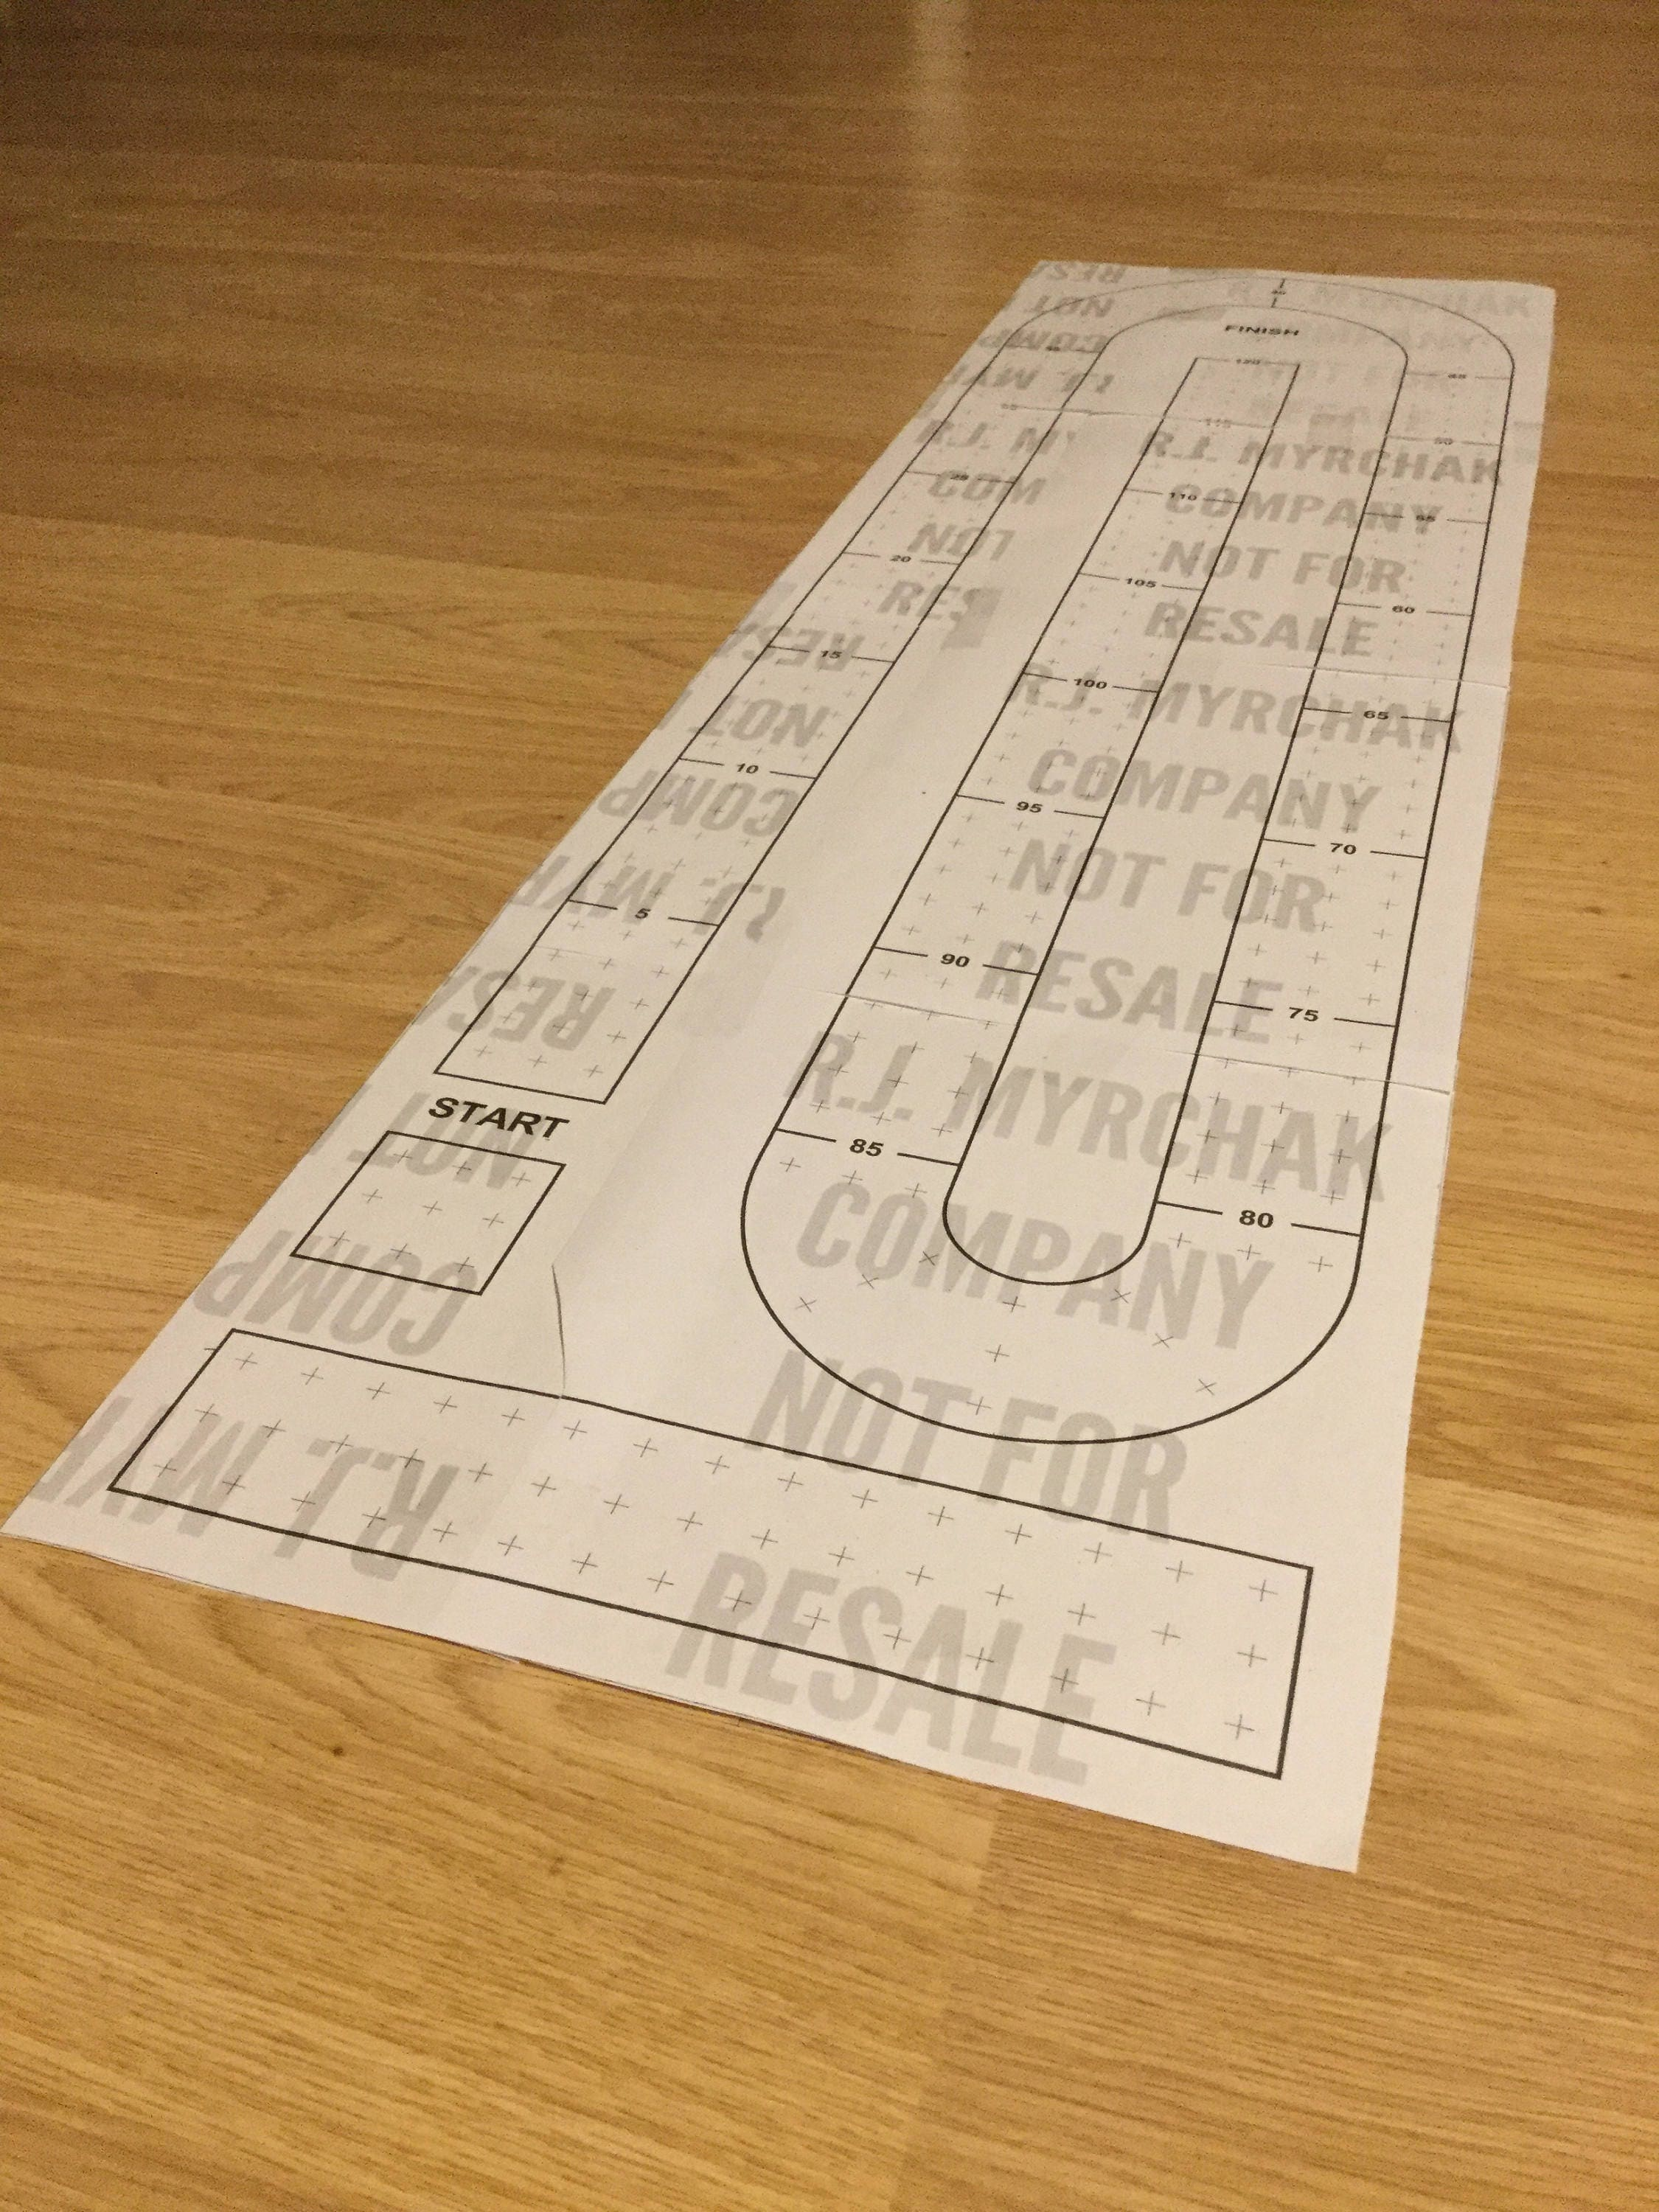 It is a photo of Epic Printable Cribbage Boards